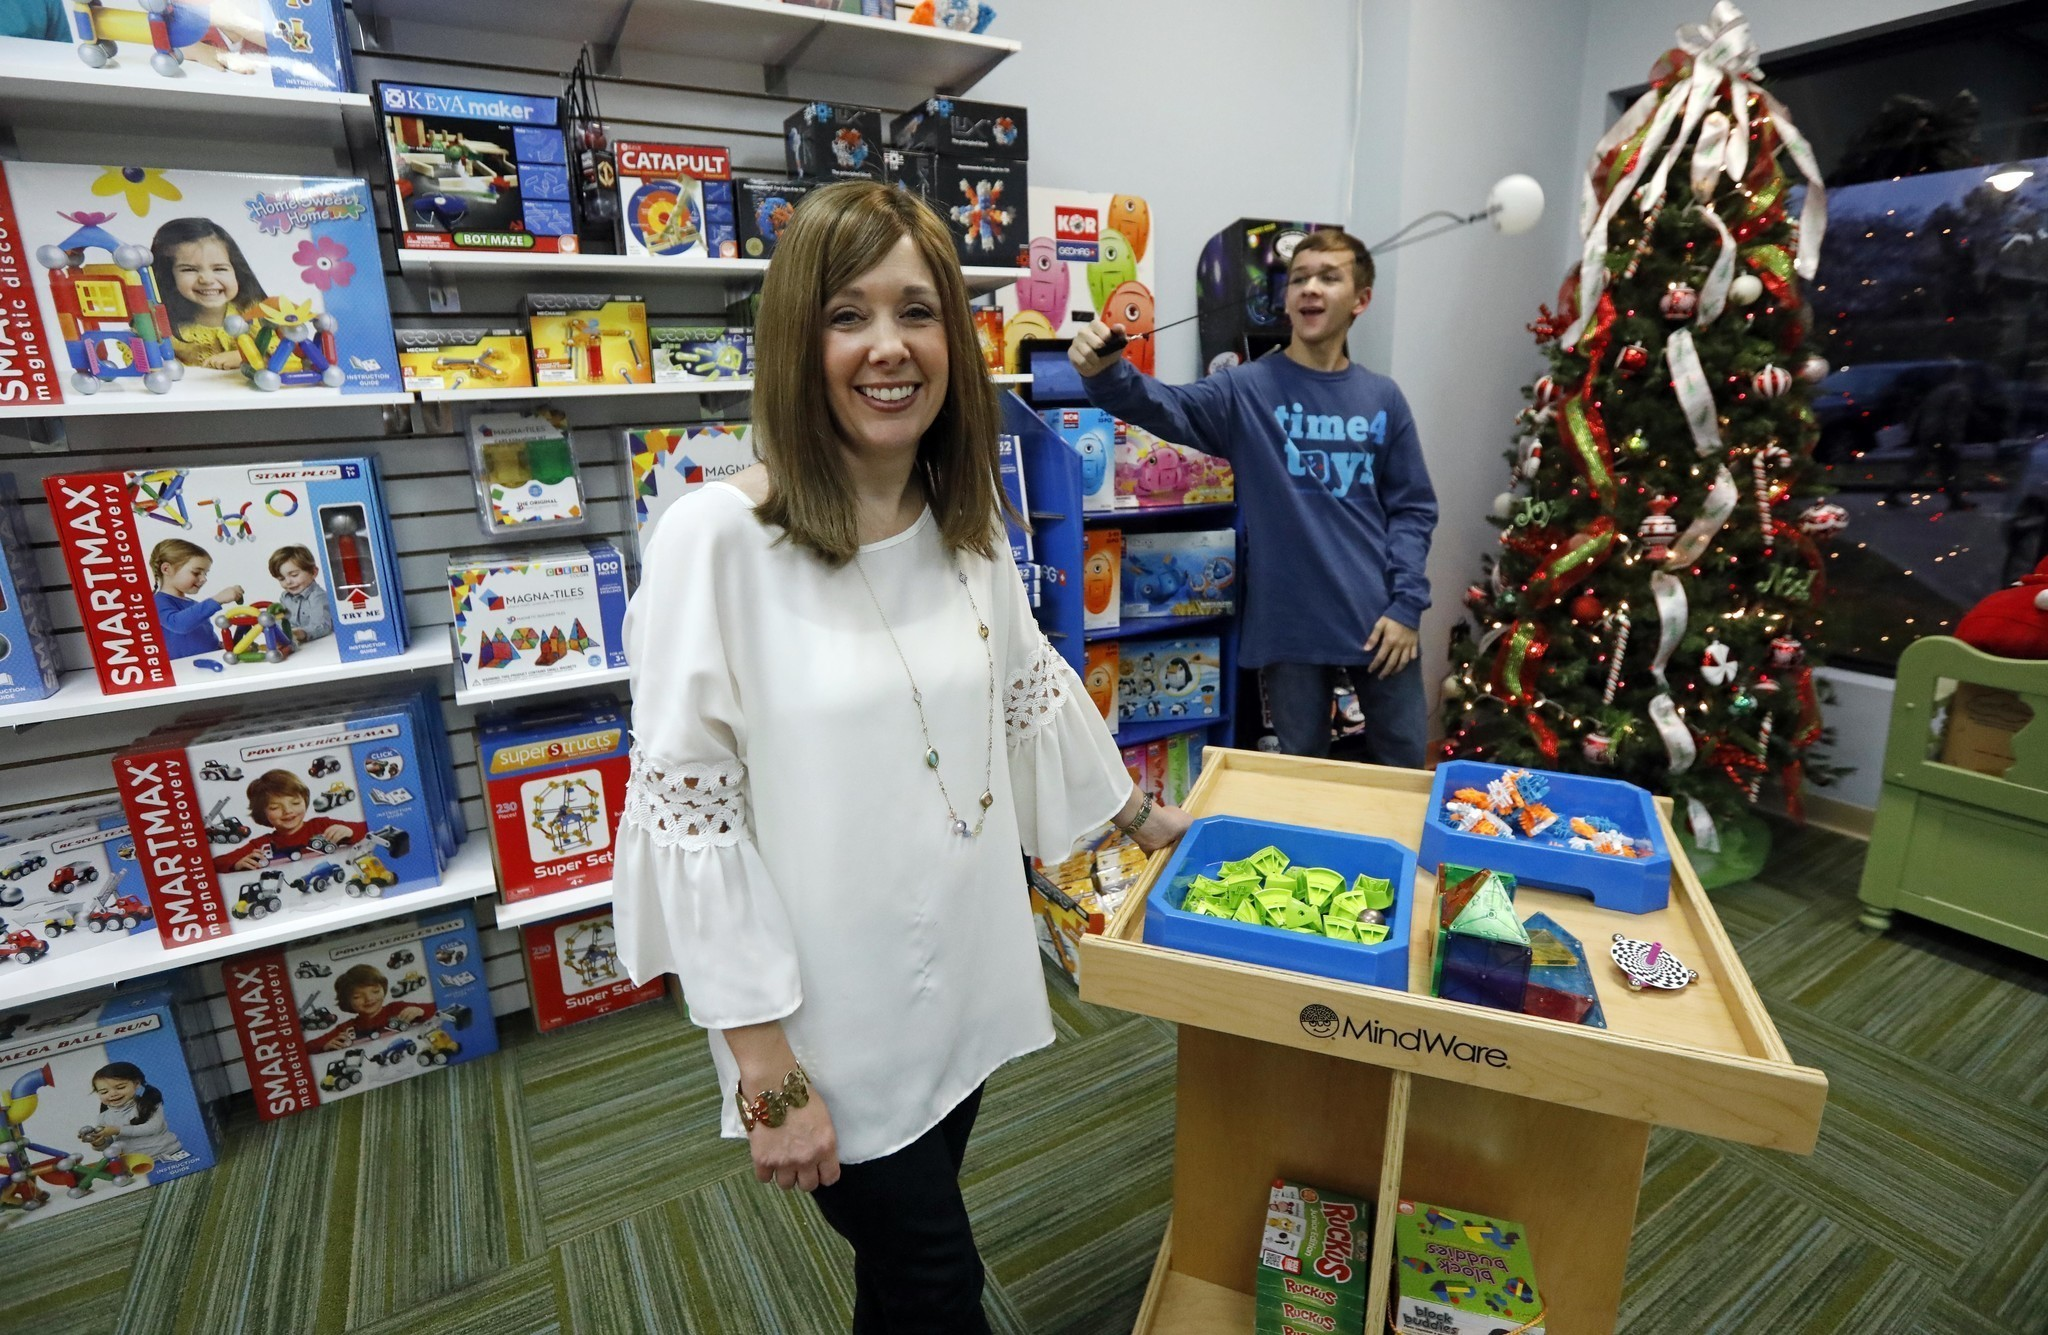 Toy sellers and makers offer more options for kids with autism